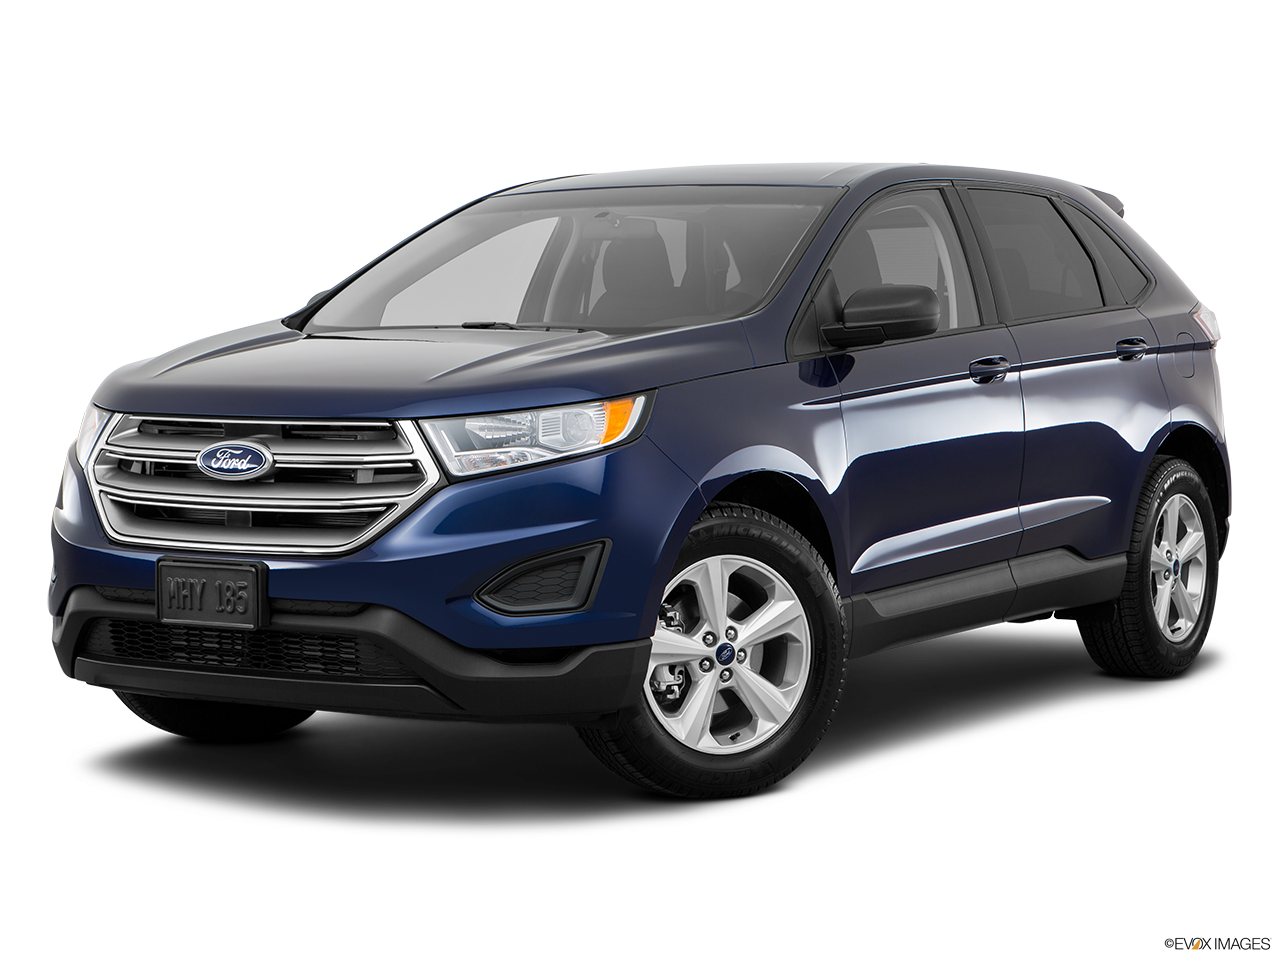 Test Drive A 2016 Ford Edge at All Star Ford Kilgore in Kilgore